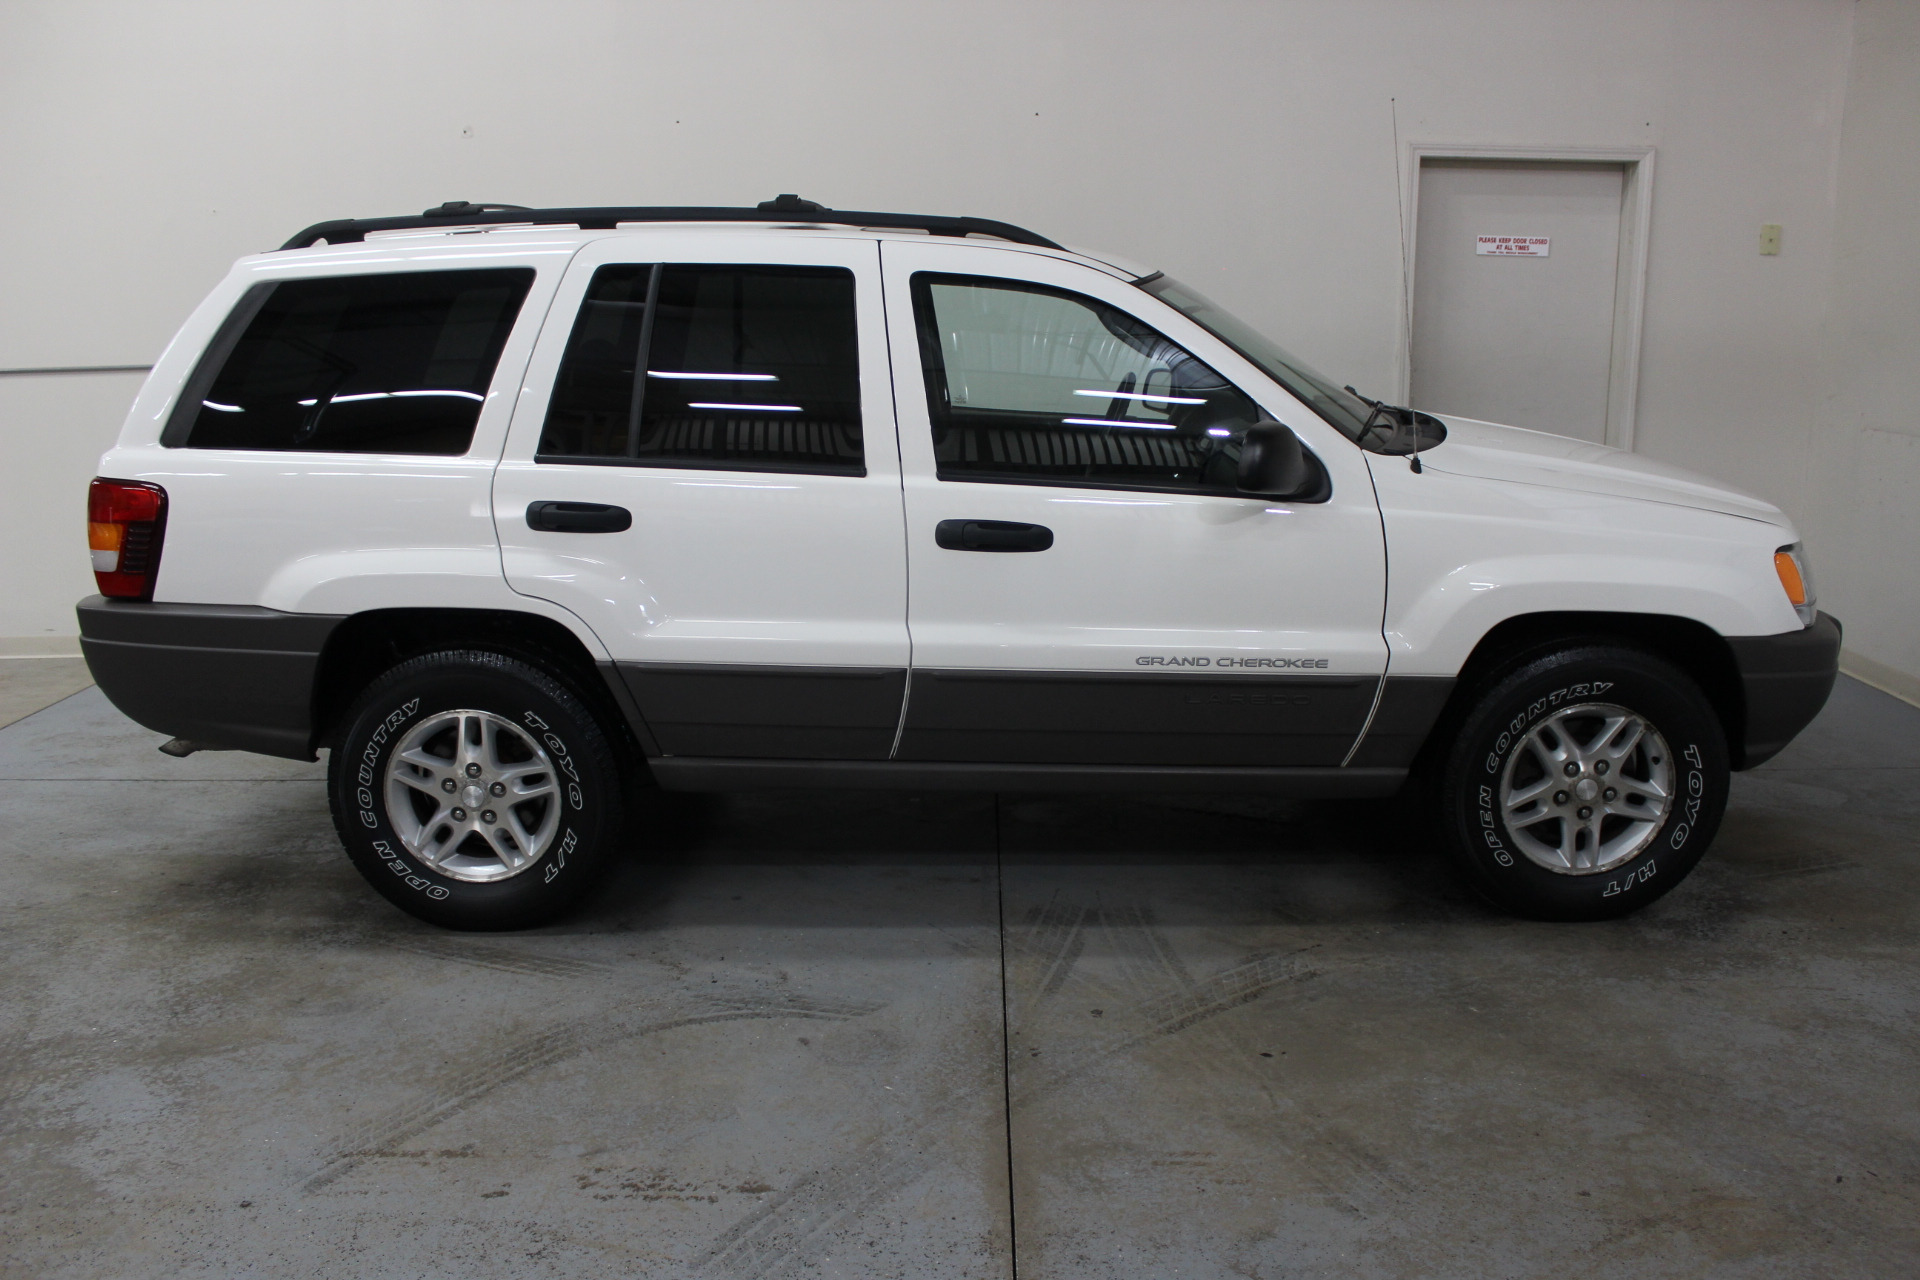 2003 jeep grand cherokee laredo biscayne auto sales pre owned dealership ontario ny. Black Bedroom Furniture Sets. Home Design Ideas